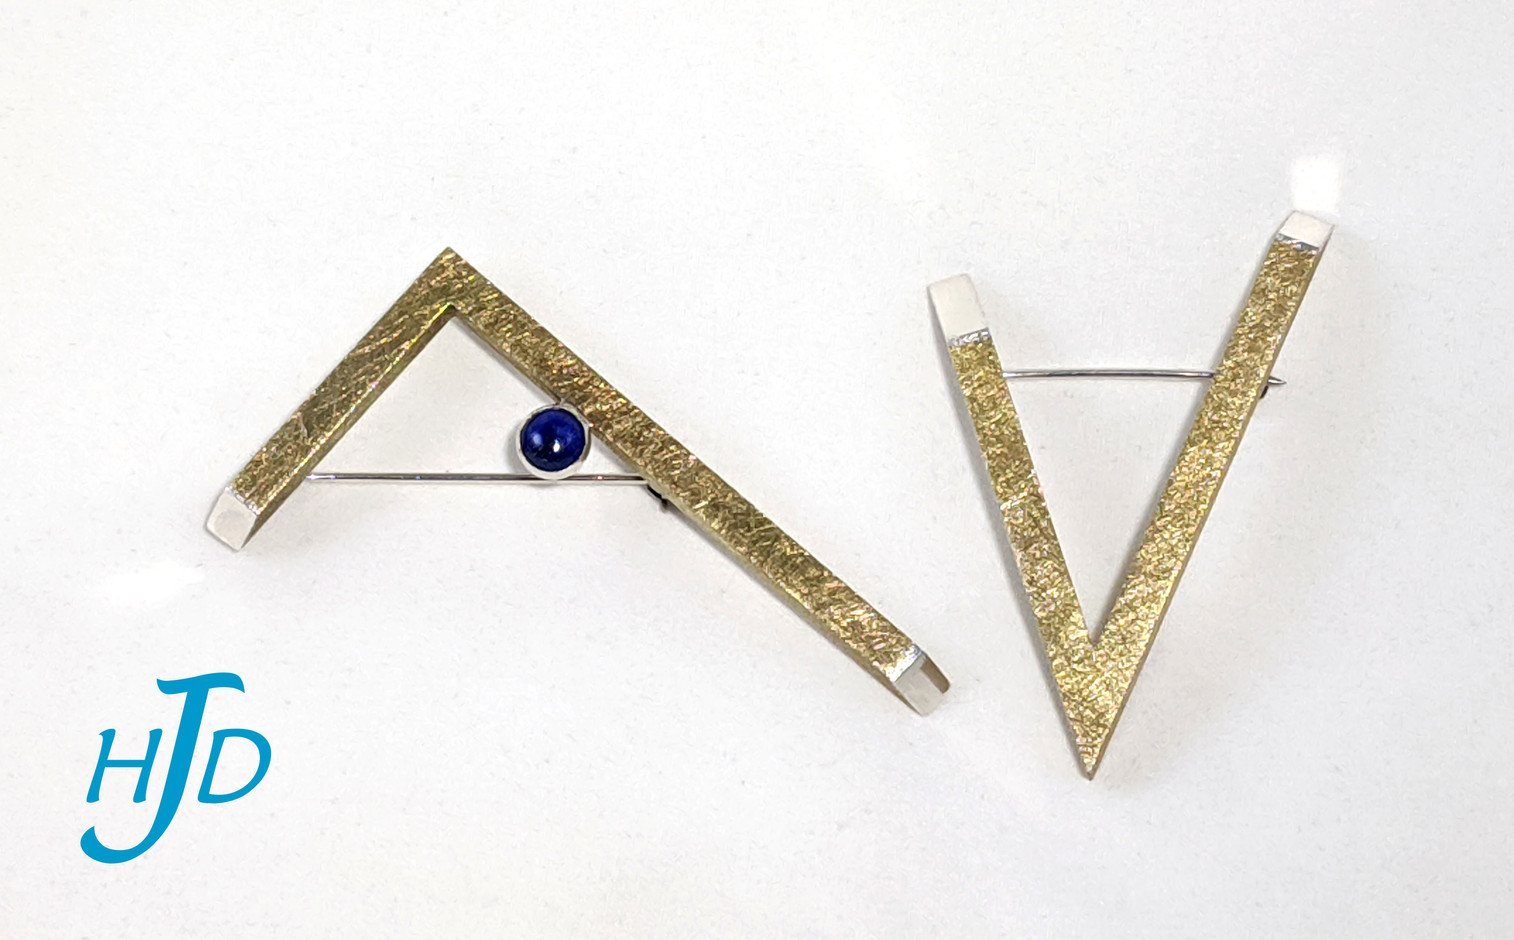 Brass and sterling silver hollow brooches with 6mm lapis lazuli, 2009